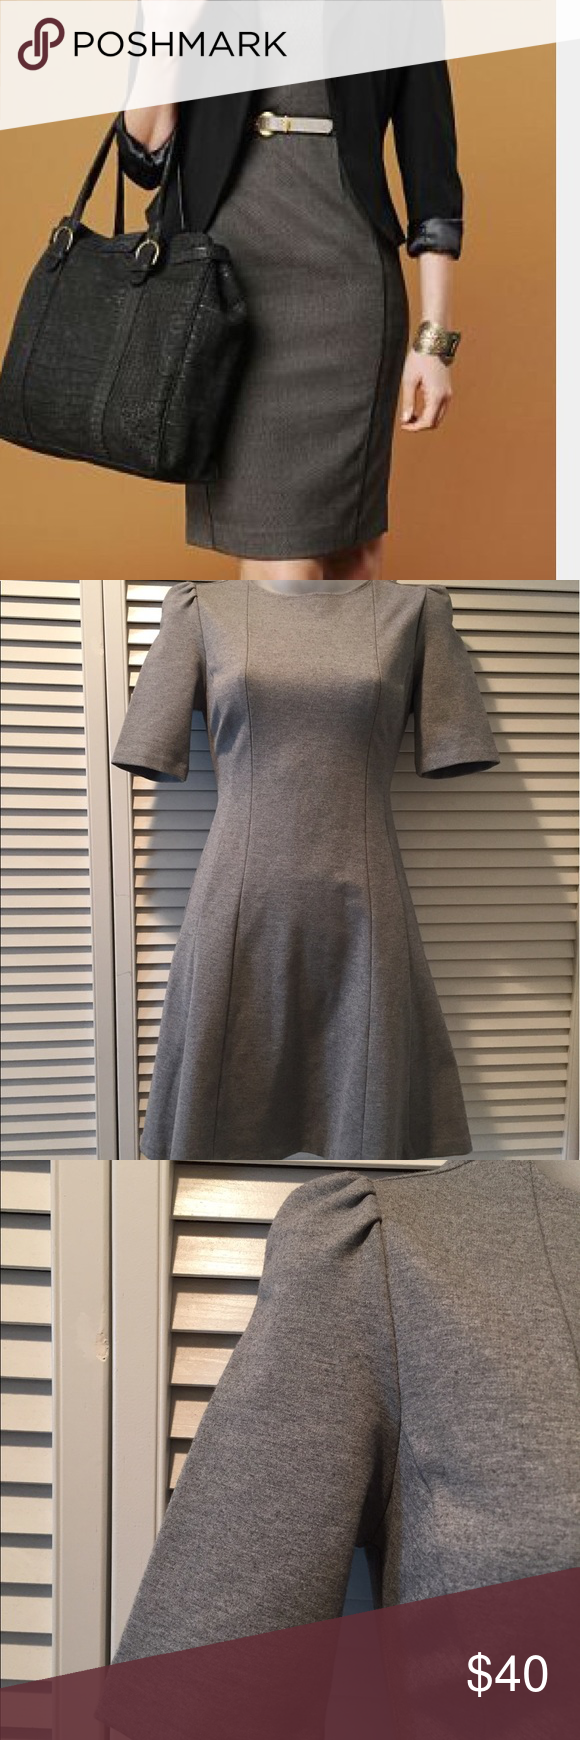 """Zara - Gray Business Dress A professional business dress from Zara will have you looking sharp! An A-Line silhouette makes it a very flattering fitted dress, simple yet chic and you can dress it up with a statement necklace, or add a belt or blazer. Gently worn 1x in like new condition, the material tag has been cut off but it's a cotton/elastane blend so there is some room for stretch. The sleeves hit right at the elbow and there is a zipper at the back. Length is 32"""". The perfect…"""